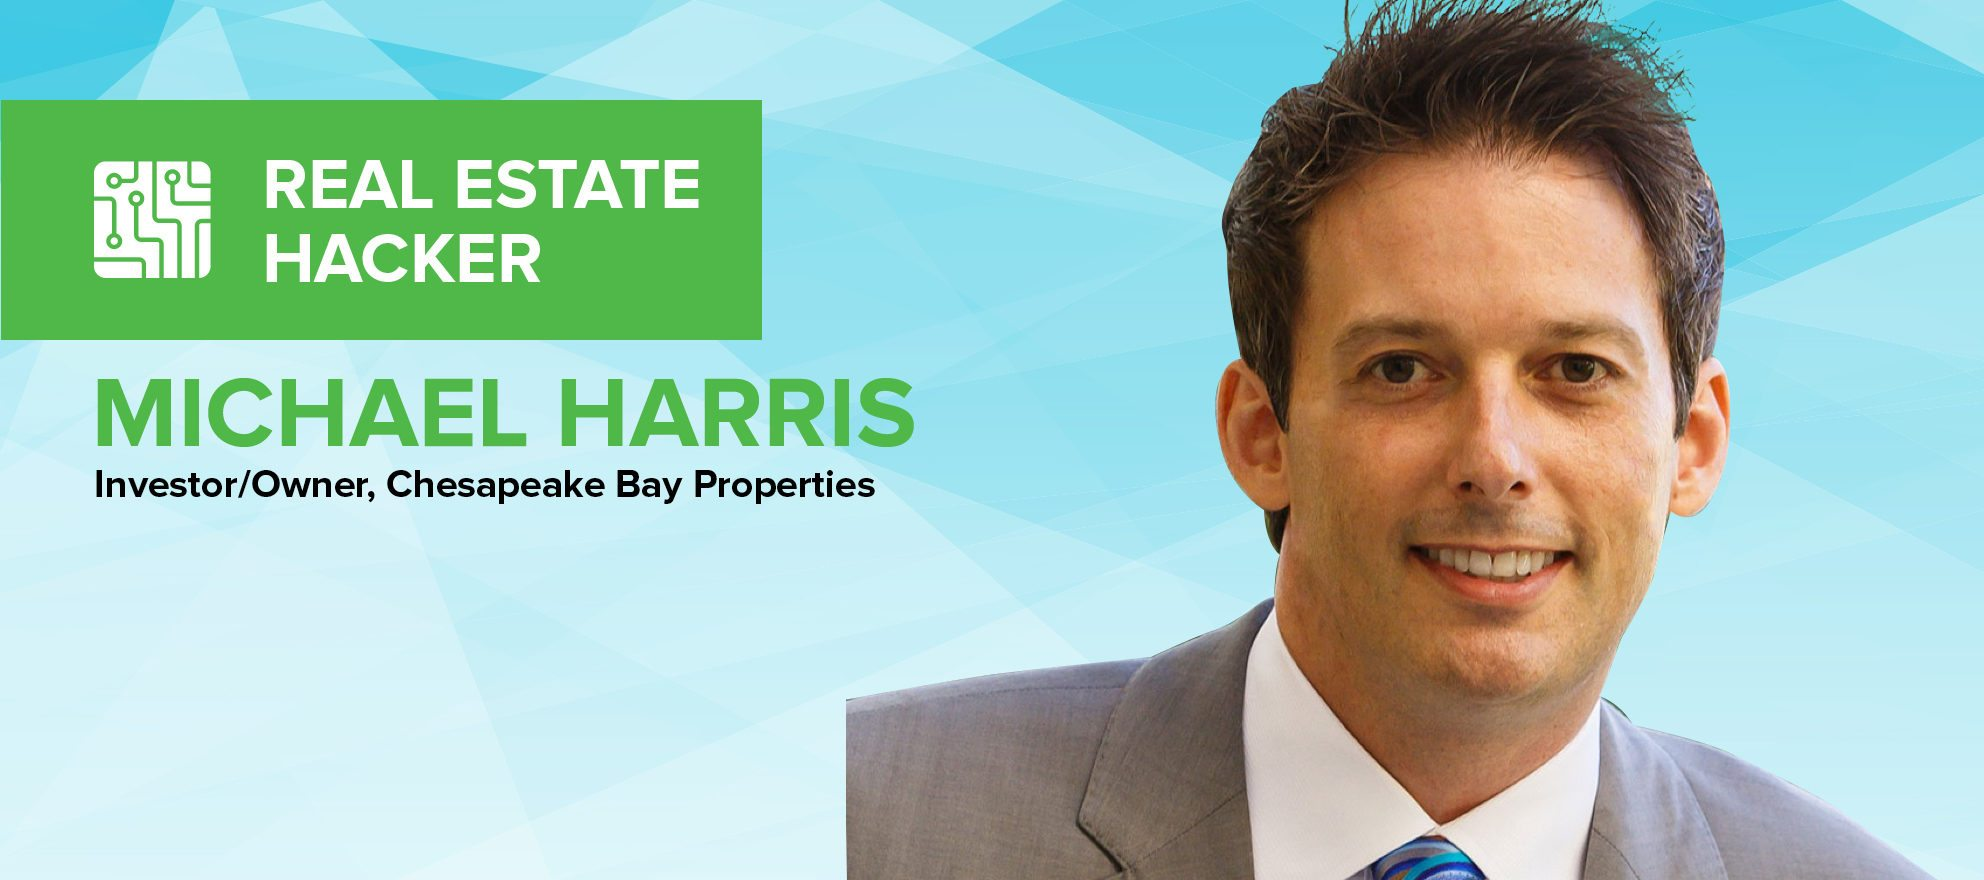 Michael Harris: 'We deliver exceptional results by always following the numbers'